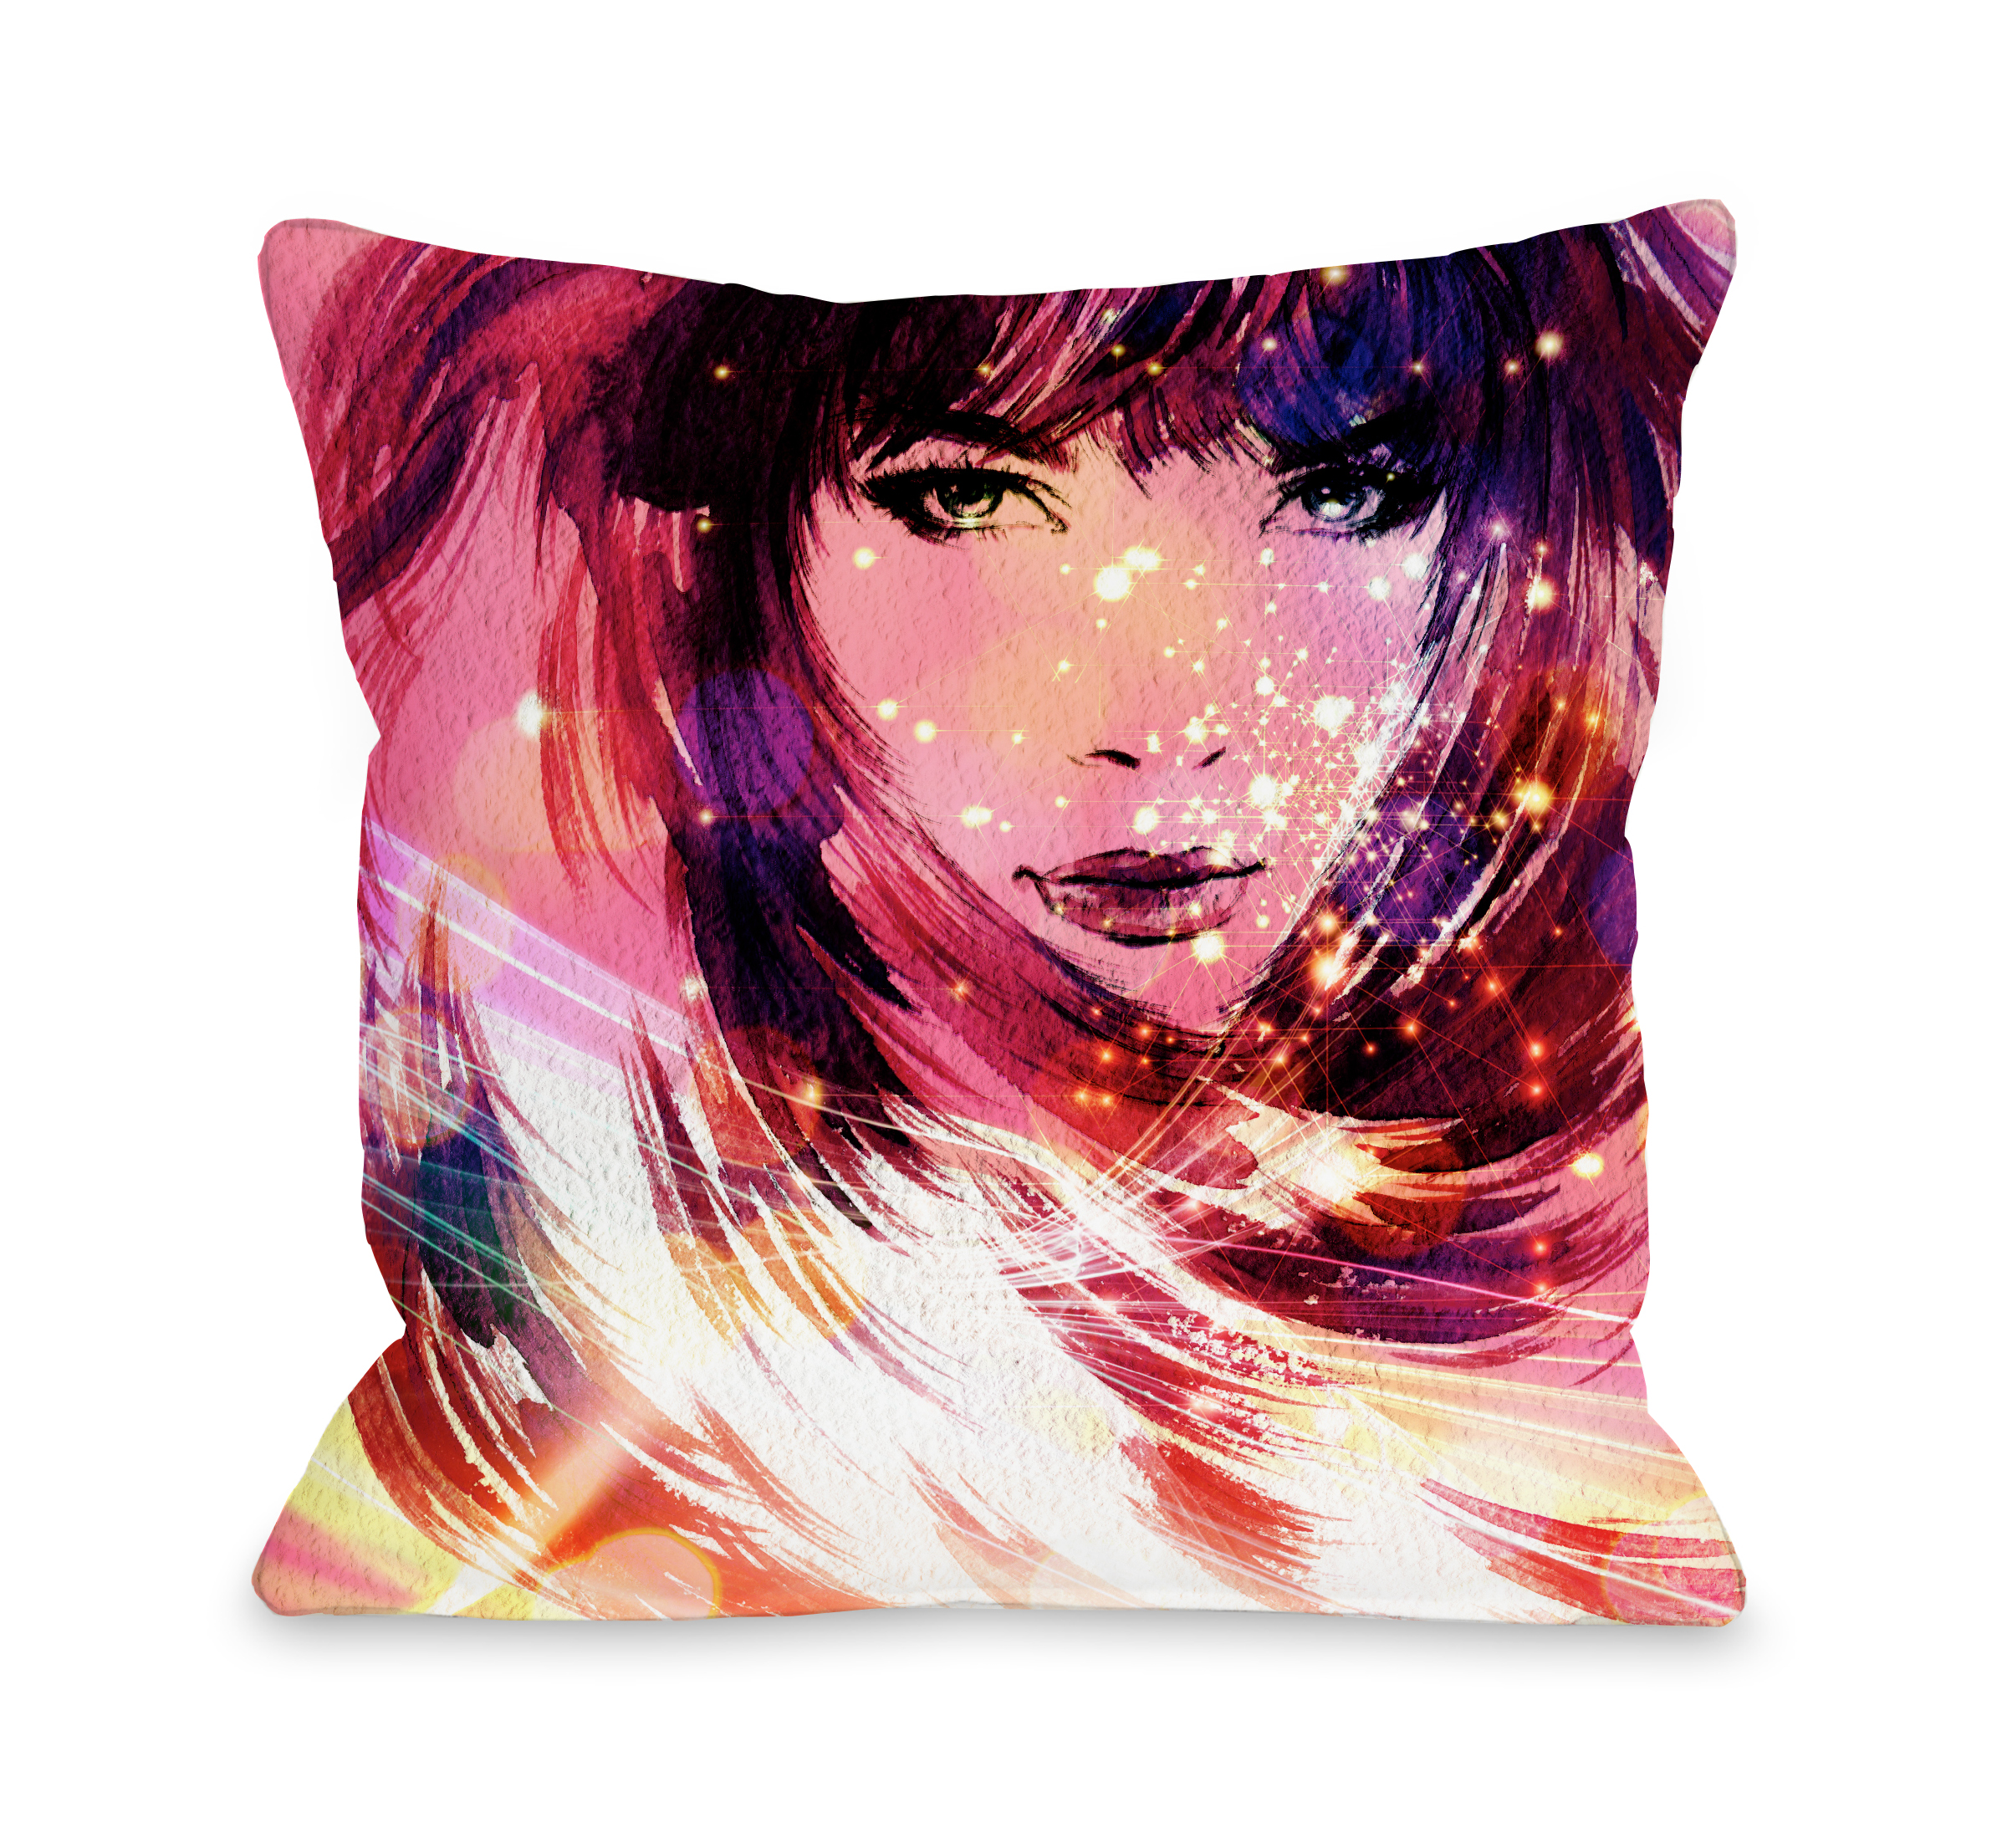 Her Time To Shine - Pink Multi 16x16 Pillow by OBC